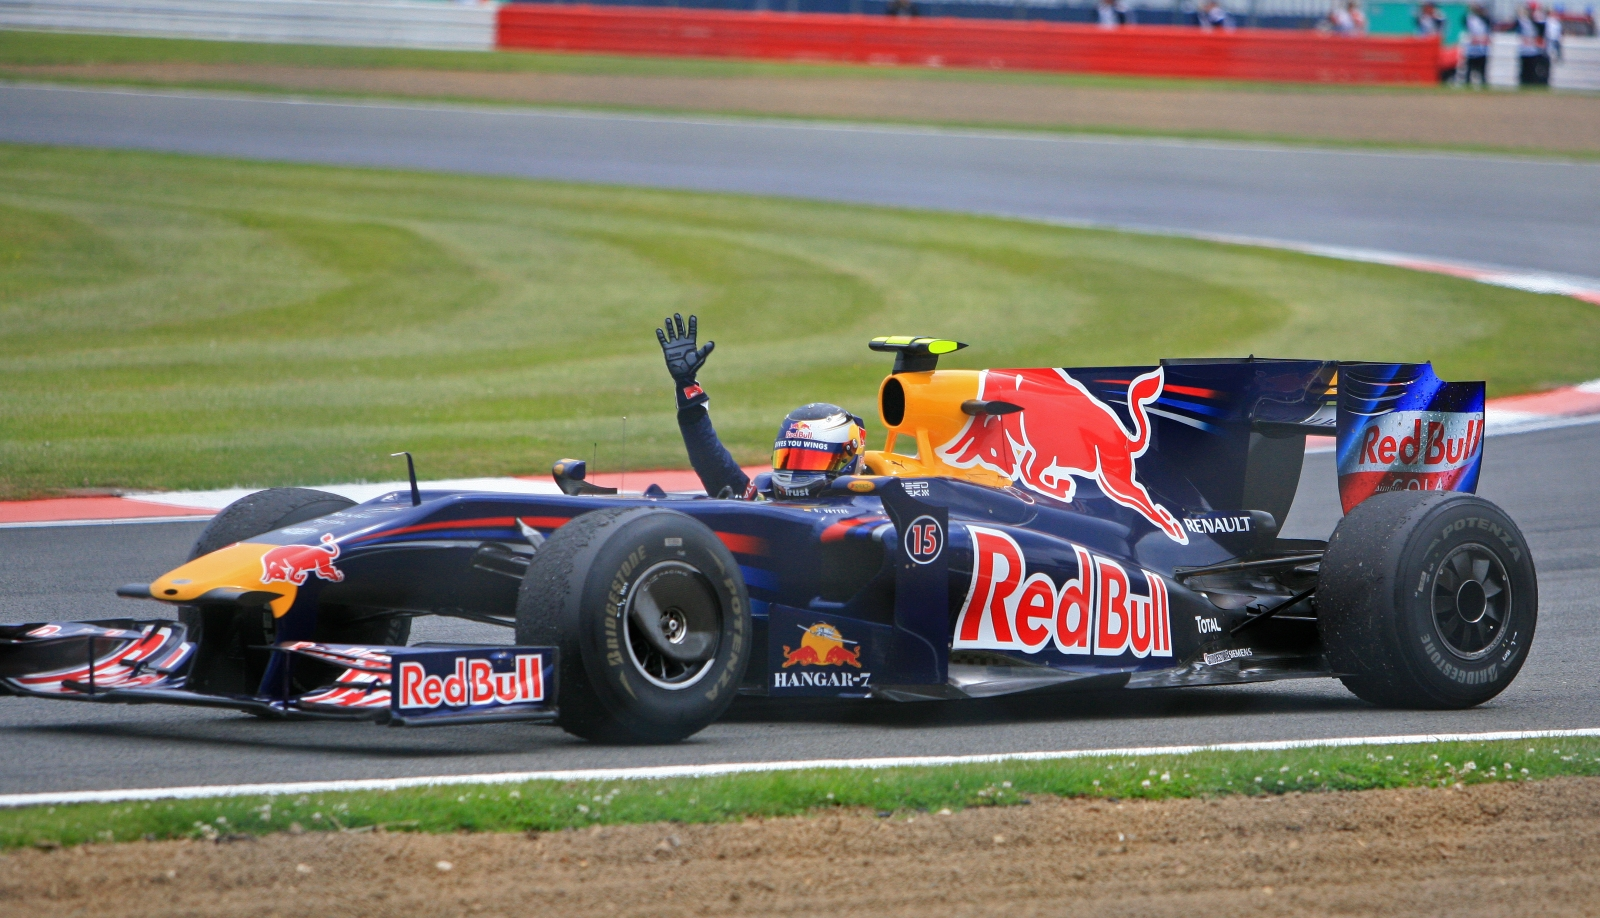 Sebastian Vettel Red Bull RB5 silverstone british gp 21.6.2009.